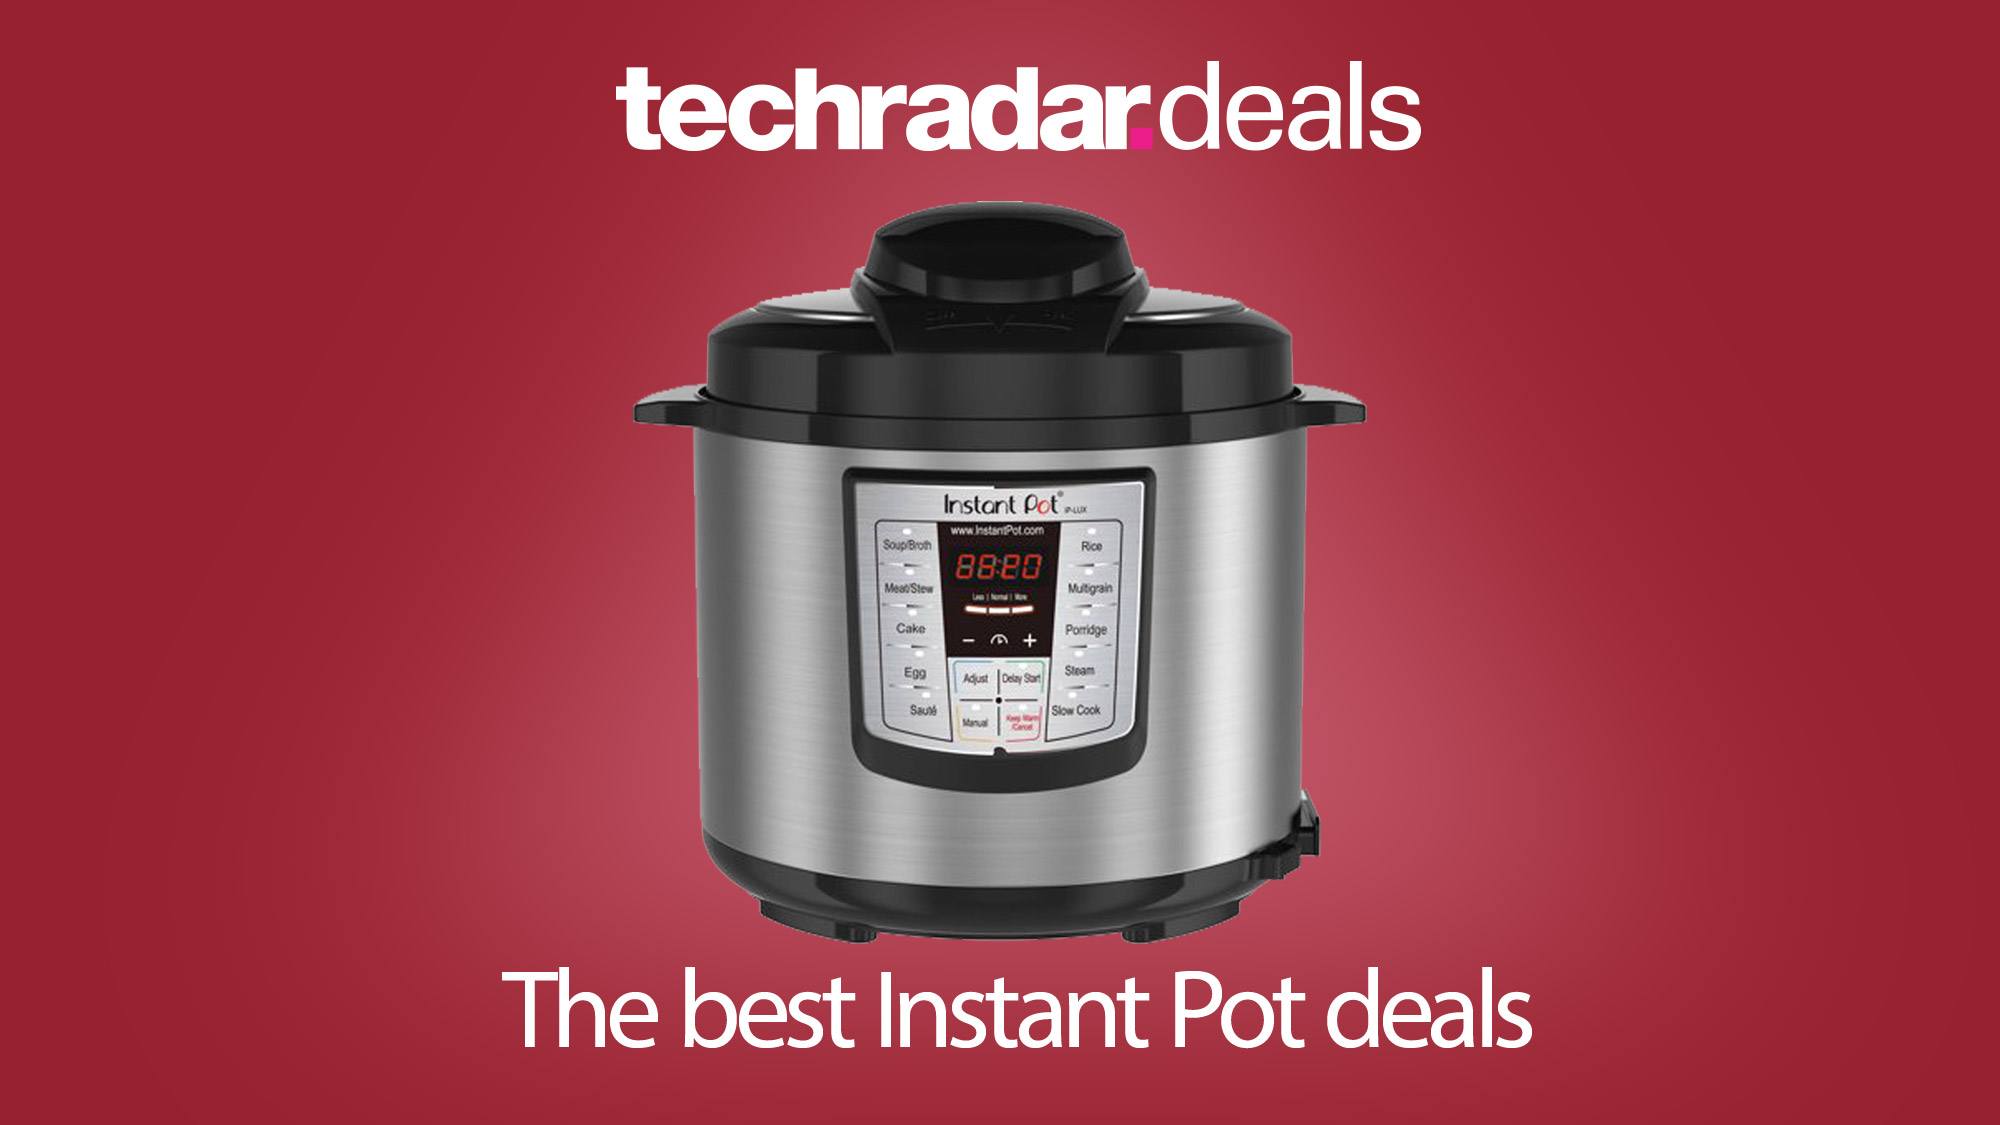 Black Friday Instant Pot deals 2020